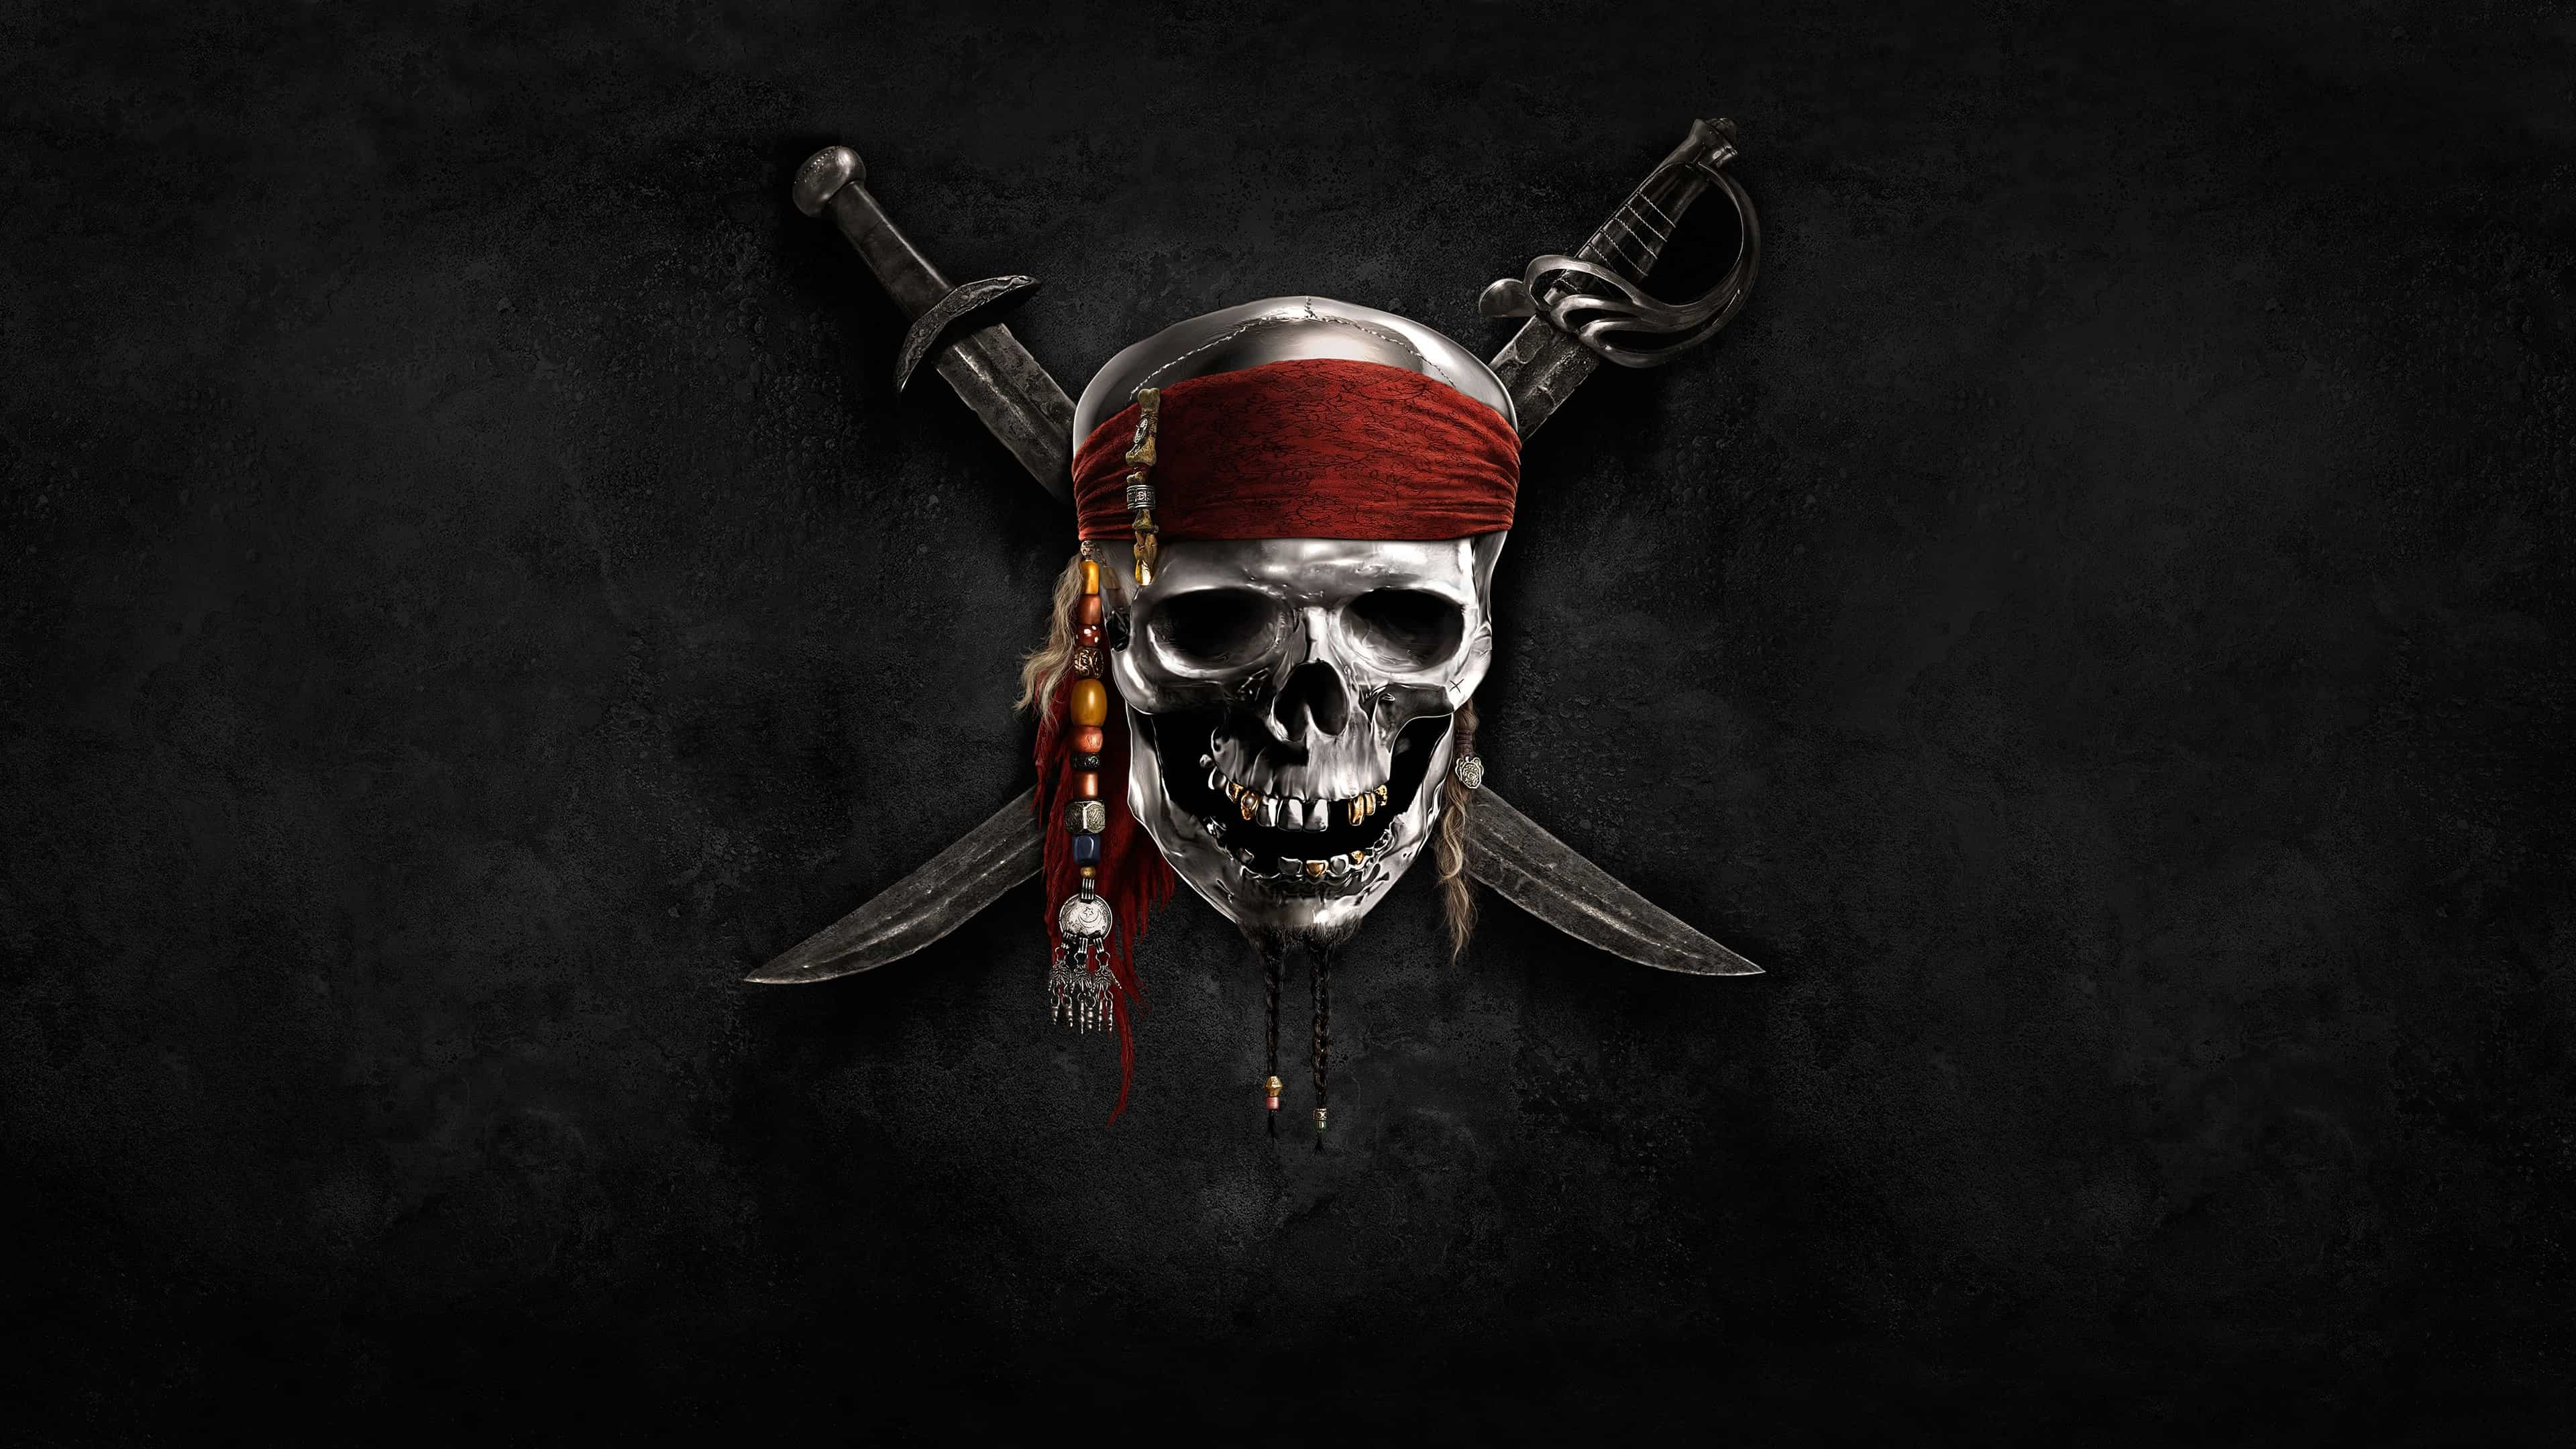 pirates of the caribbean flag uhd 4k wallpaper